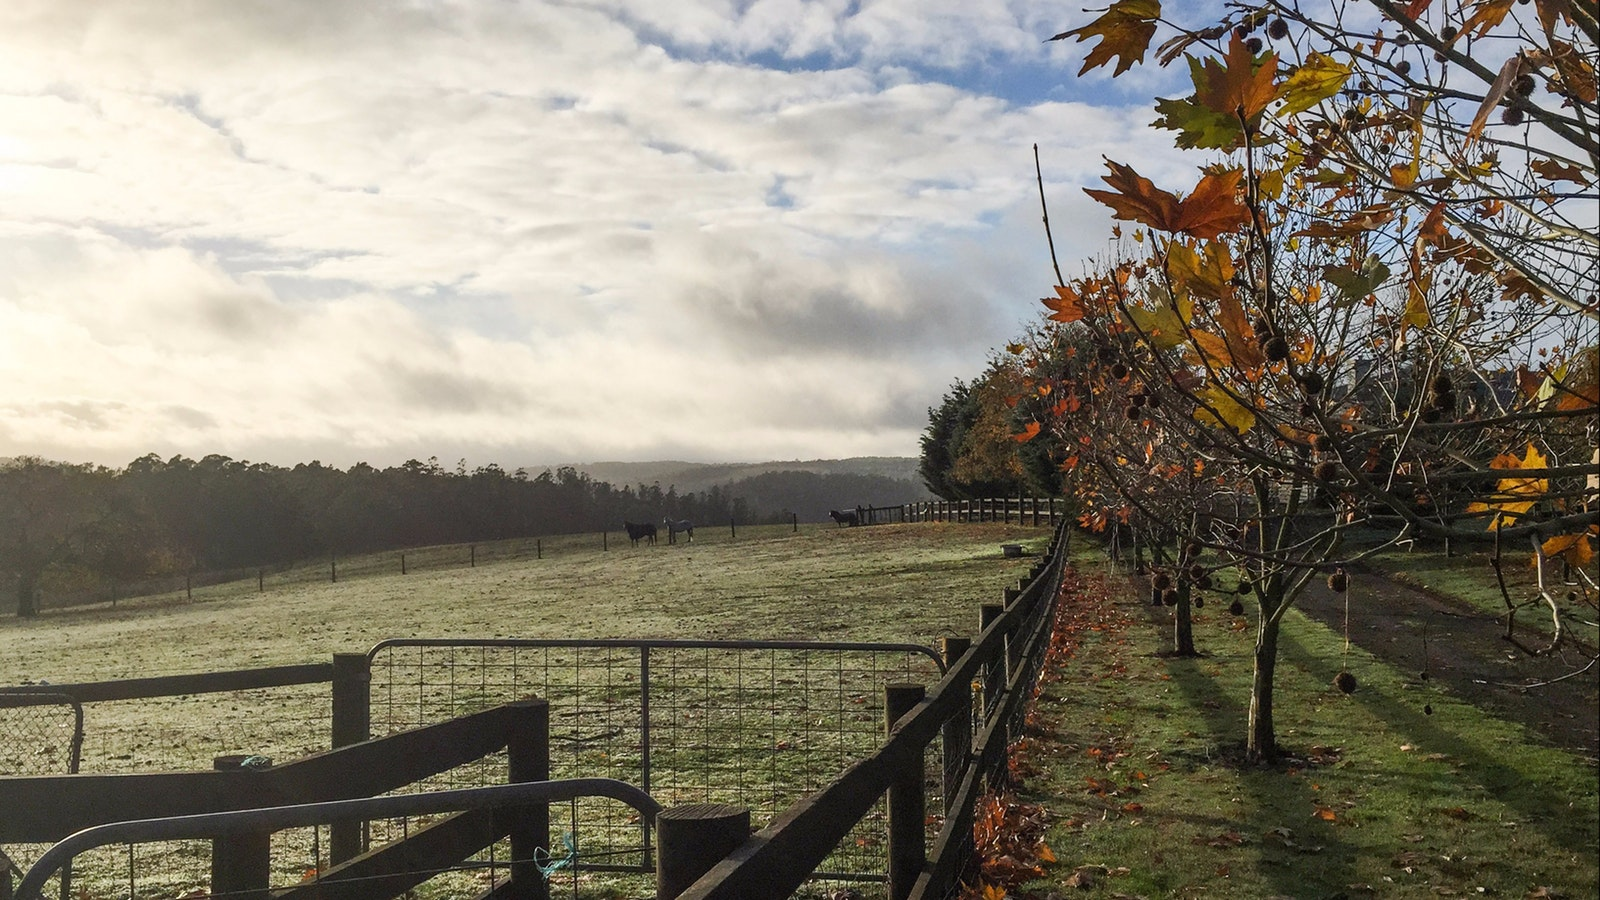 View of paddocks and autumn leaves on trees